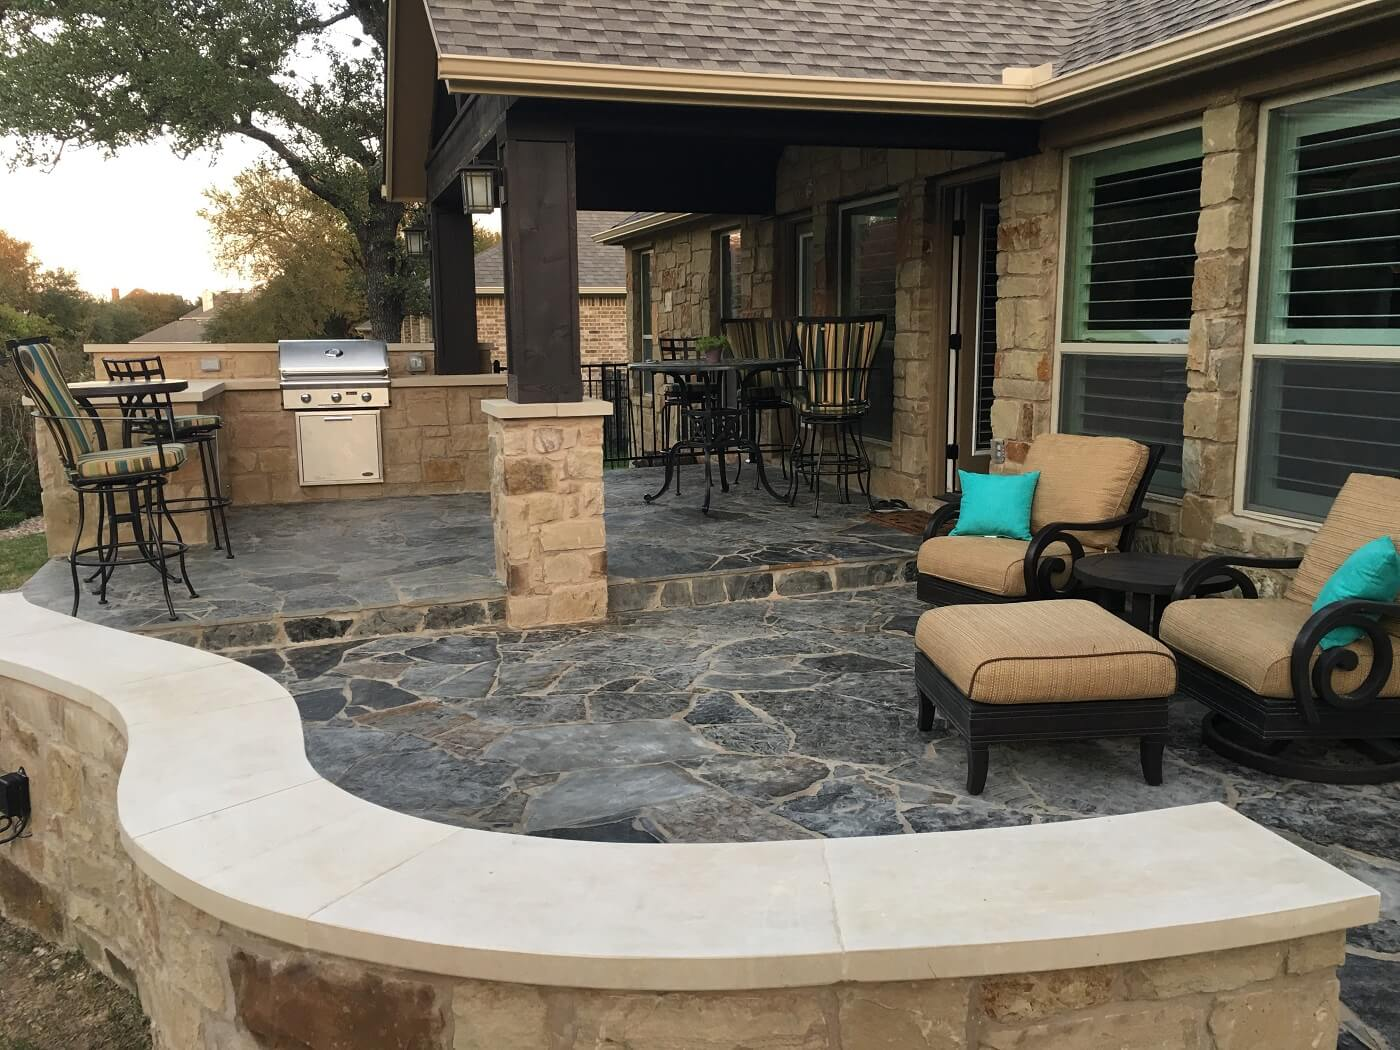 Covered and open patio with outdoor kitchen and seating area